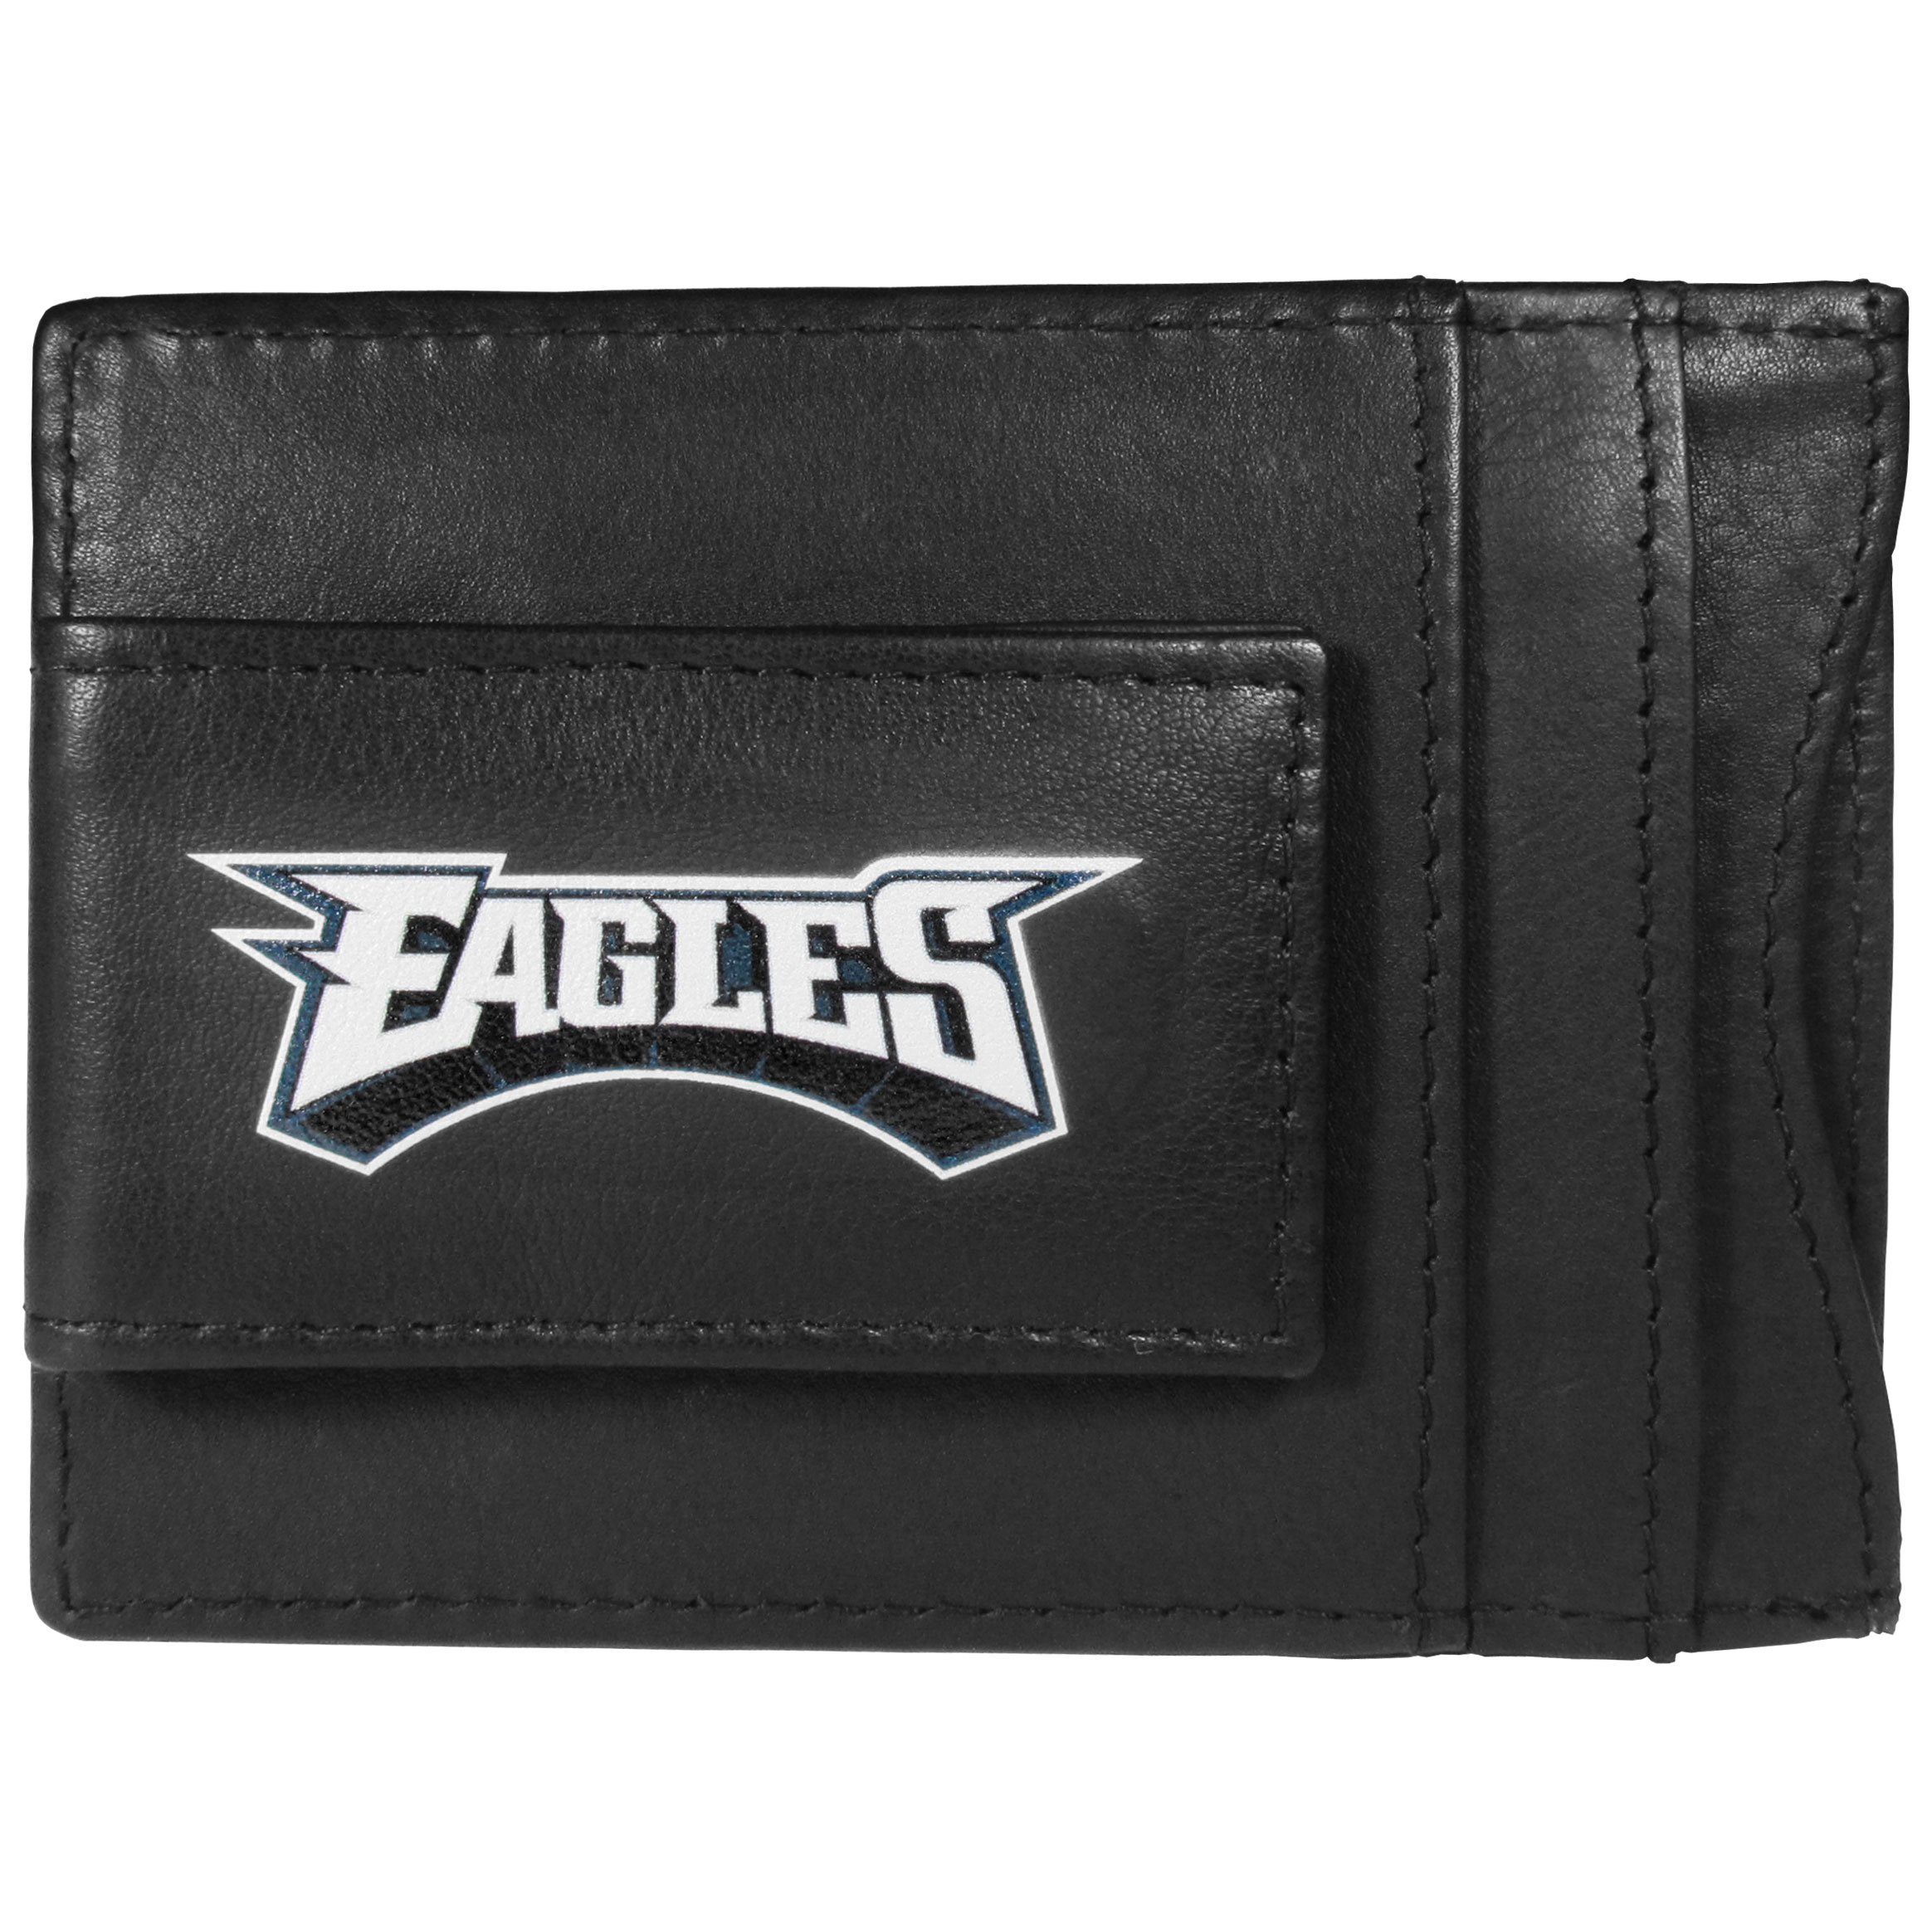 Philadelphia Eagles Logo Leather Cash and Cardholder - This super slim leather wallet lets you have all the benefits of a money clip while keeping the organization of a wallet. On one side of this front pocket wallet there is a strong, magnetic money clip to keep your cash easily accessible and the?Philadelphia Eagles team logo on the front. The versatile men's accessory is a perfect addition to your fan apparel.